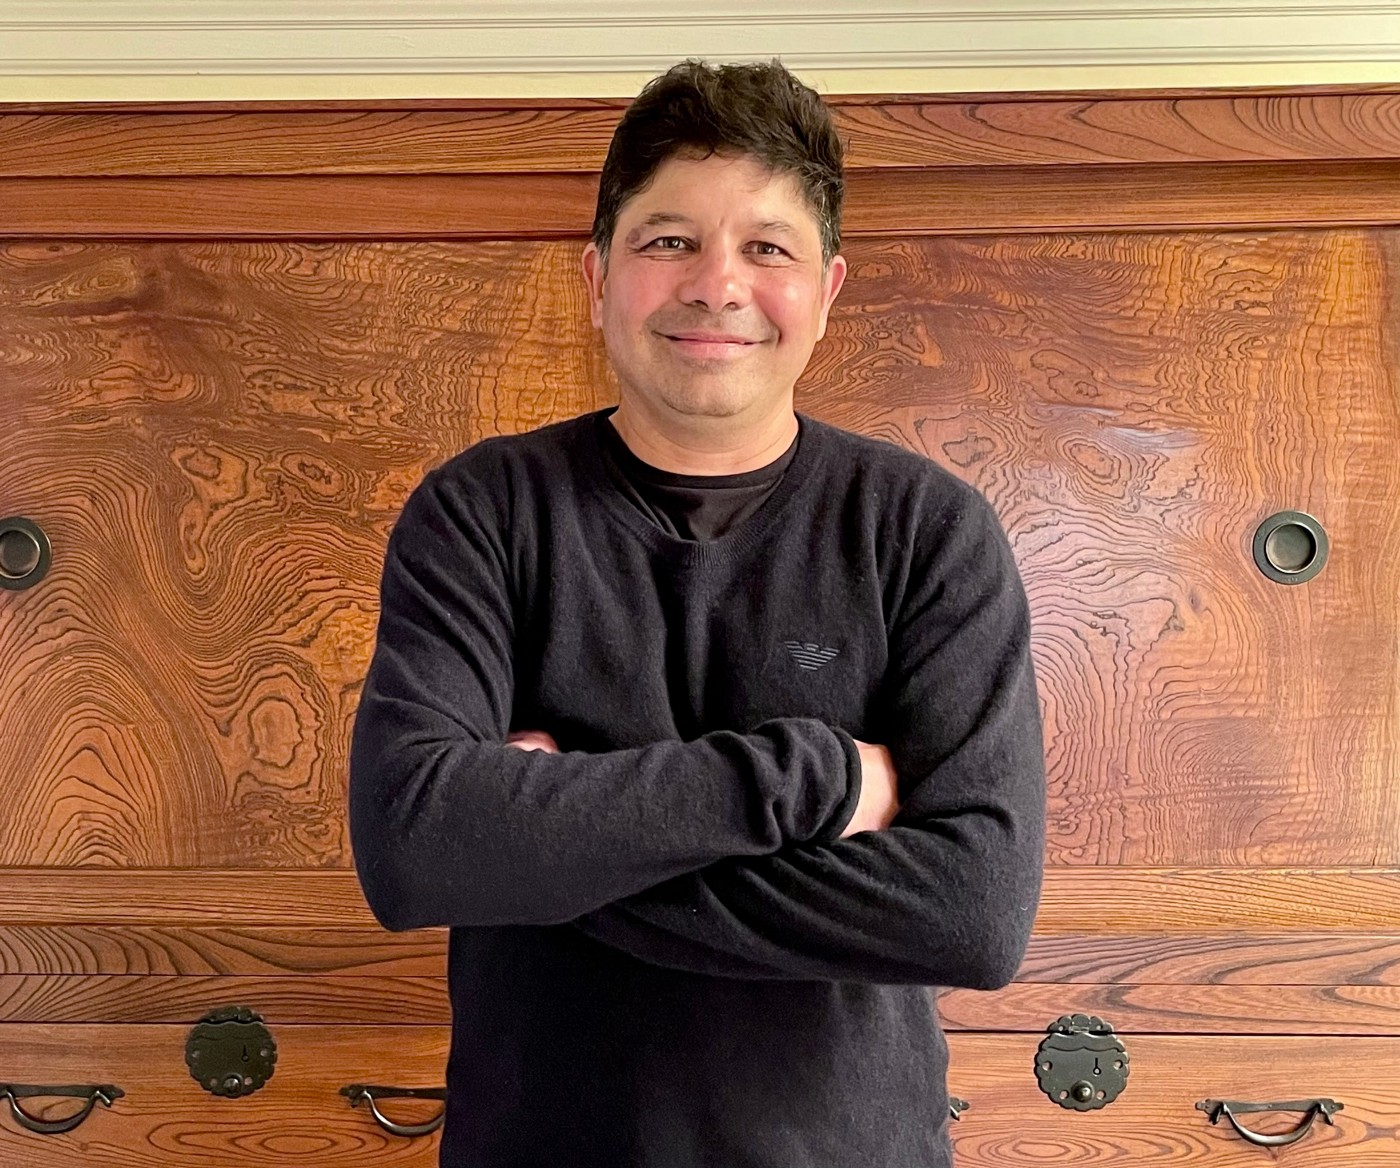 Man in sweater stands with arms folded, smiling at the camera.